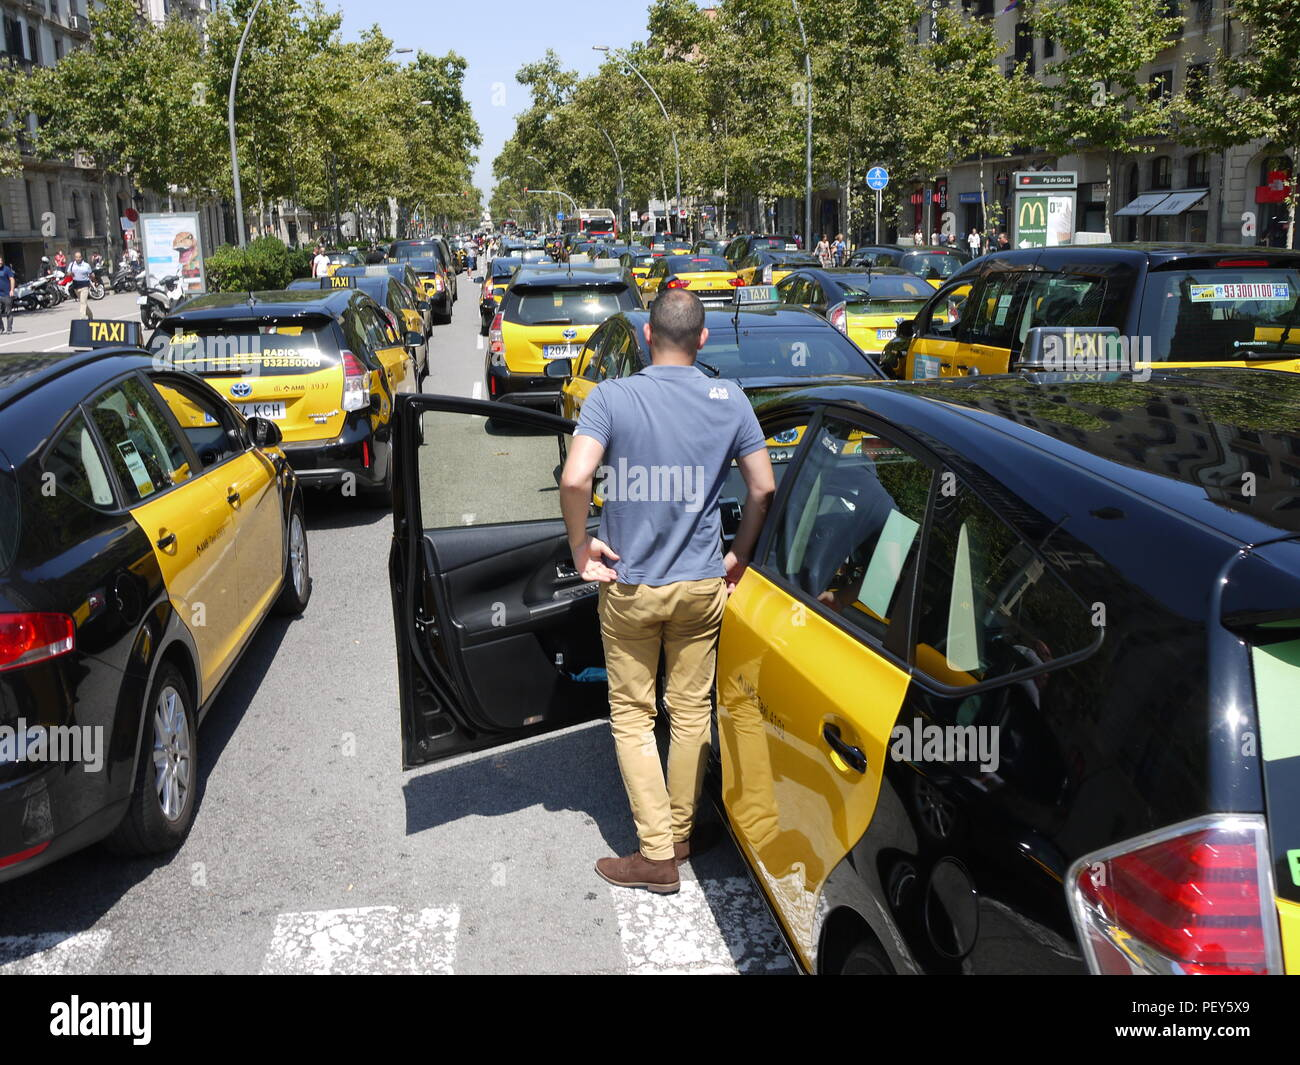 Taxis of Barcelona  gather in a street of city center to protest against new regulation during touristic season Stock Photo